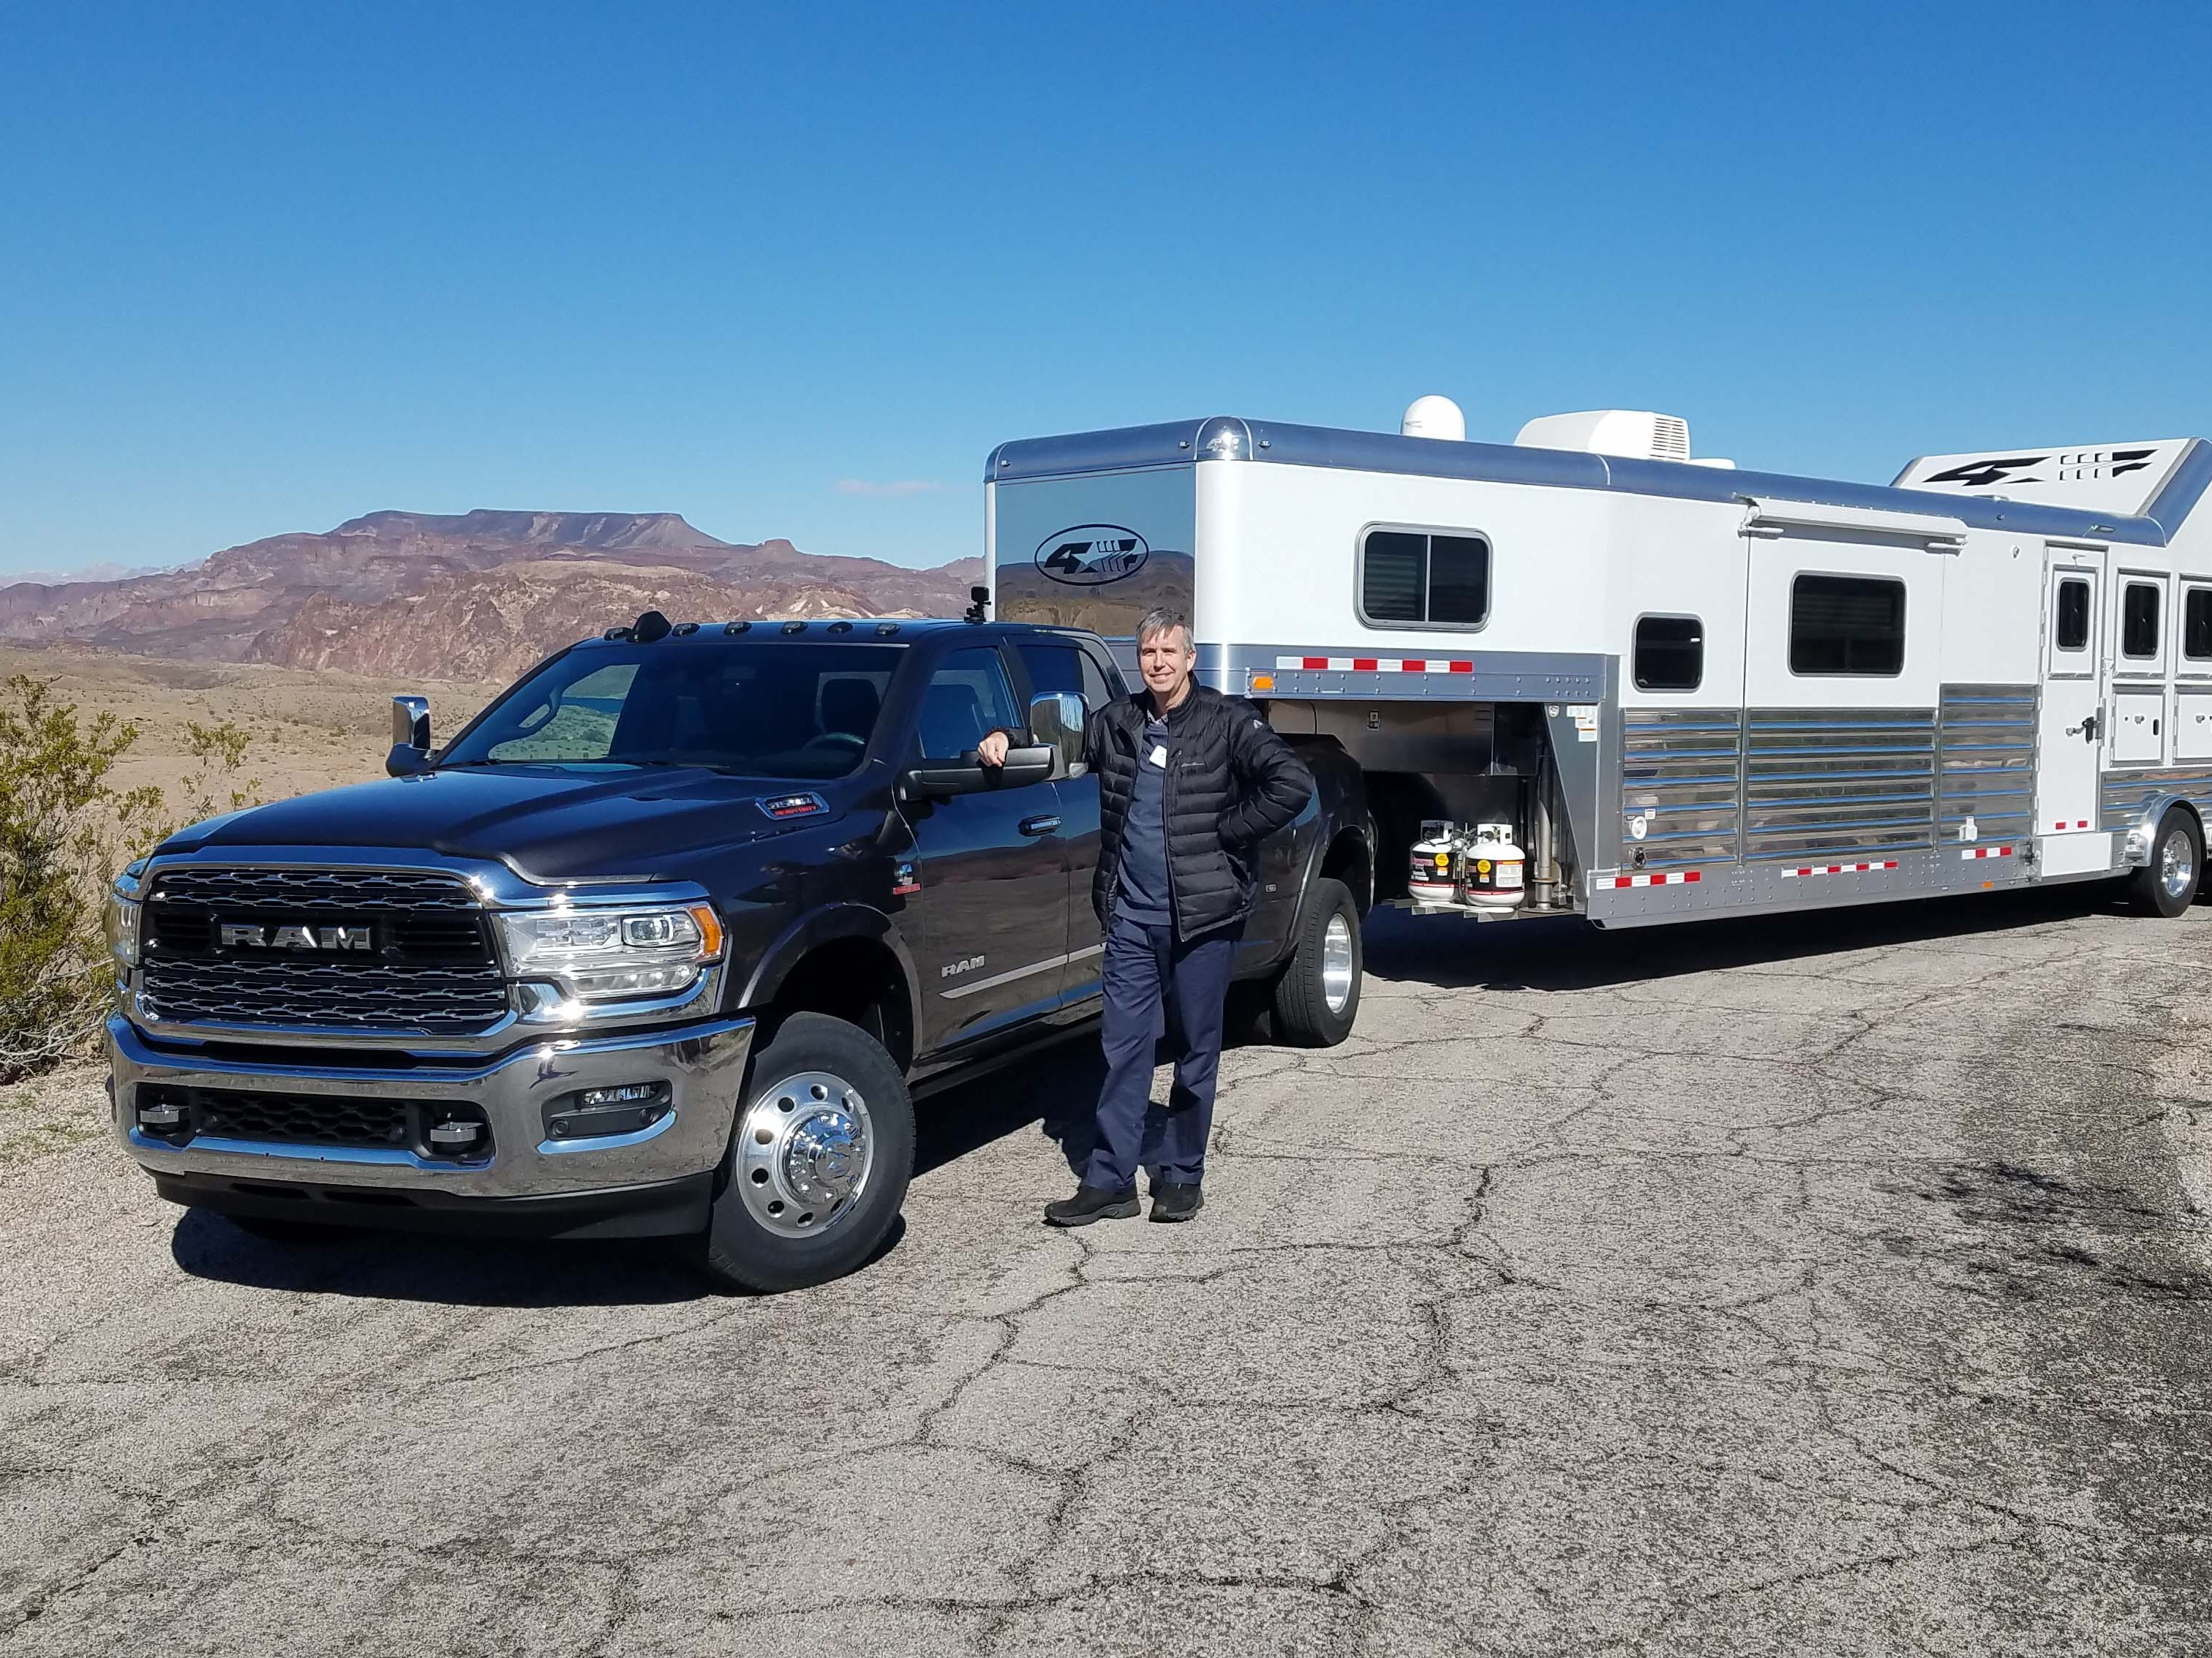 Detroit News auto critic Henry Payne took the big Ram 3500 Heavy Duty for a spin through Colorado River hill country — towing everything from horse trailers to backhoes to prove the HD's bigger-than-life abilities.